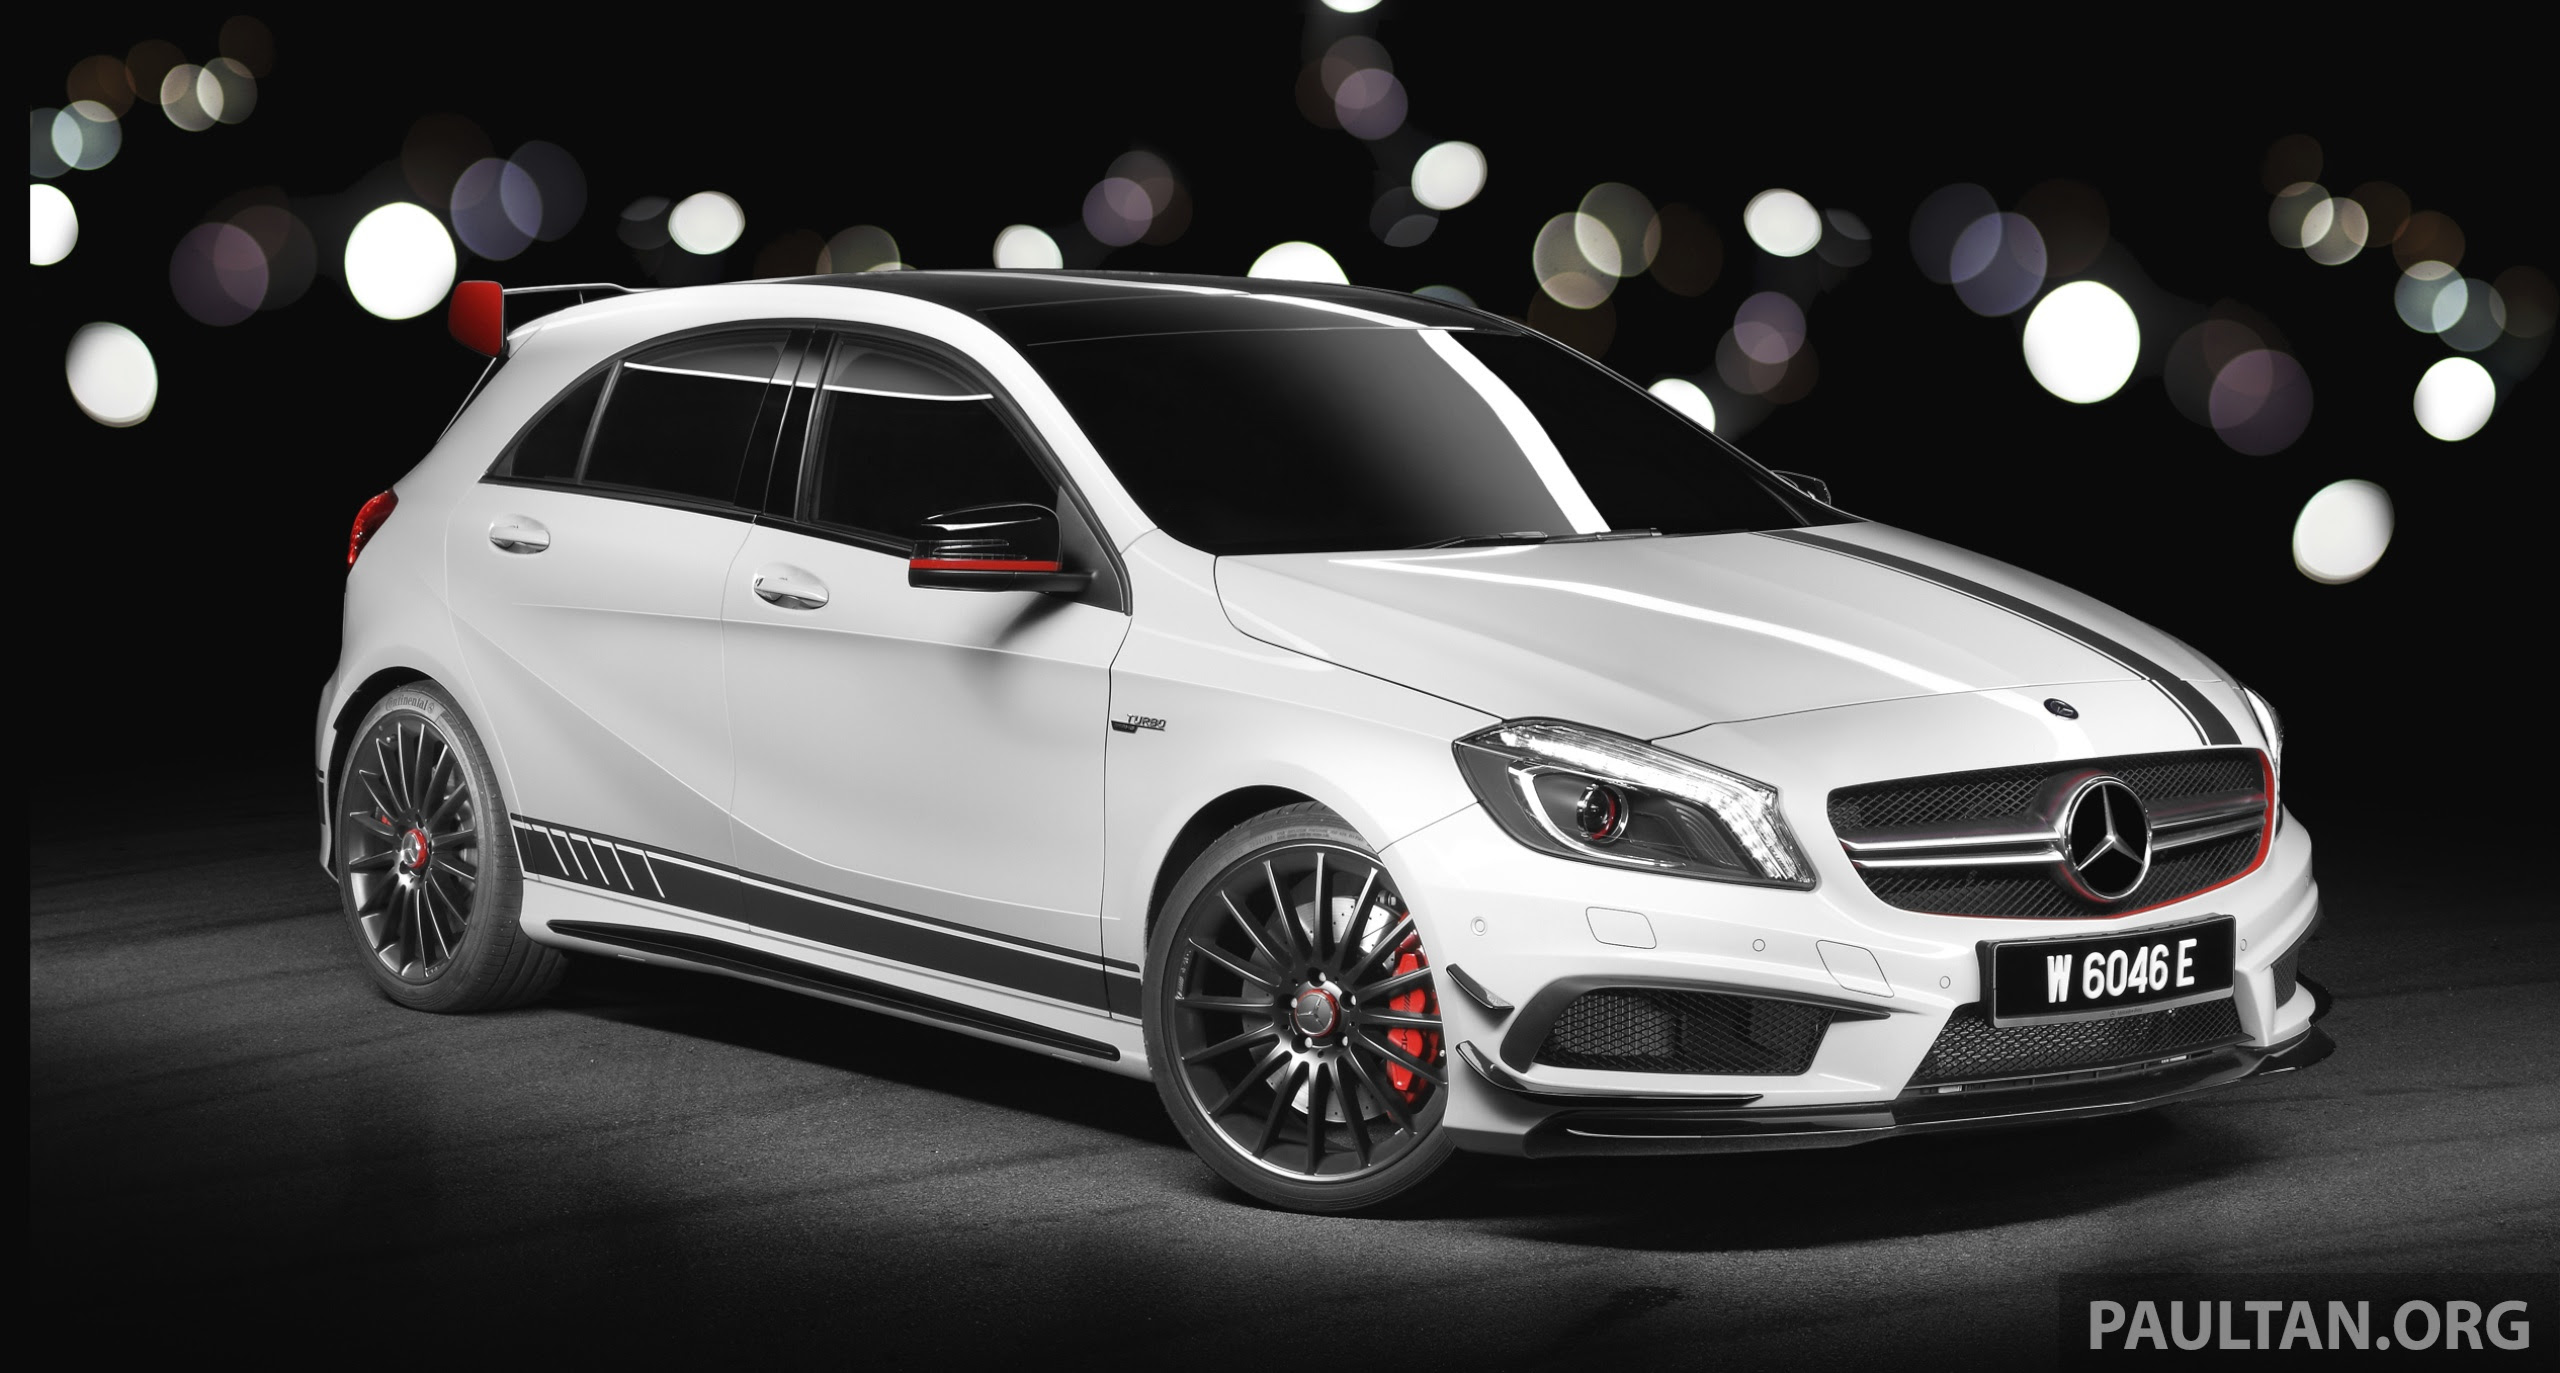 DRIVEN: Mercedes-Benz A 45 AMG - a double take Image 239517